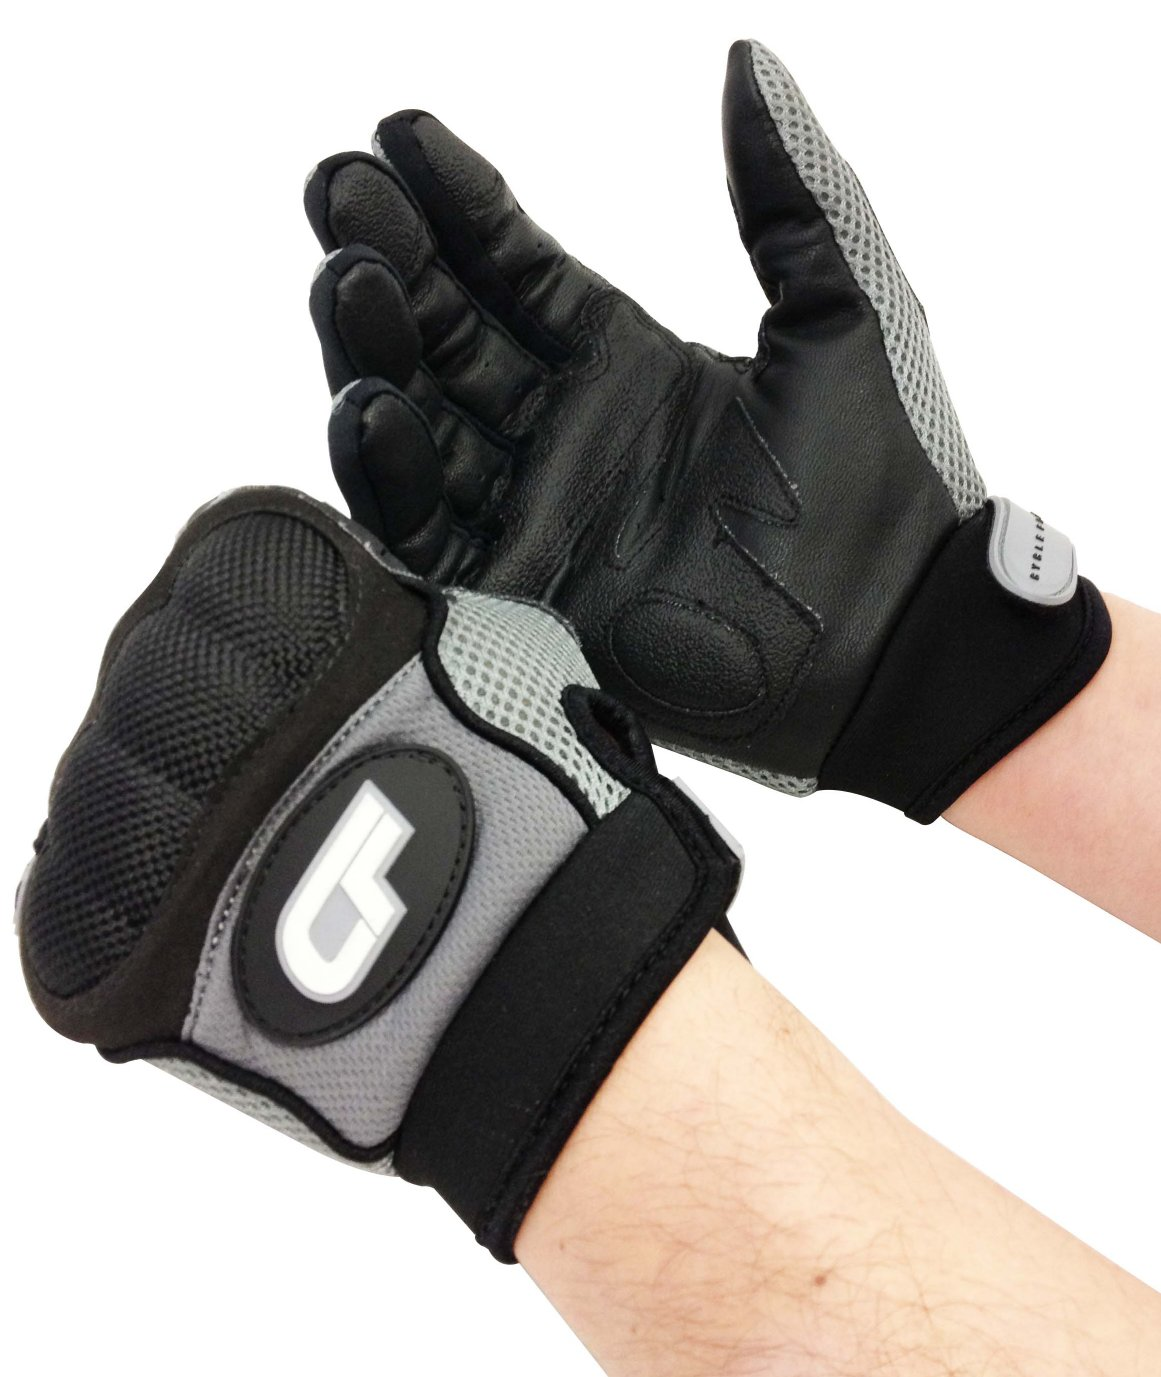 Cycle Force Full Fingered Tactical Police Bicycle Gloves